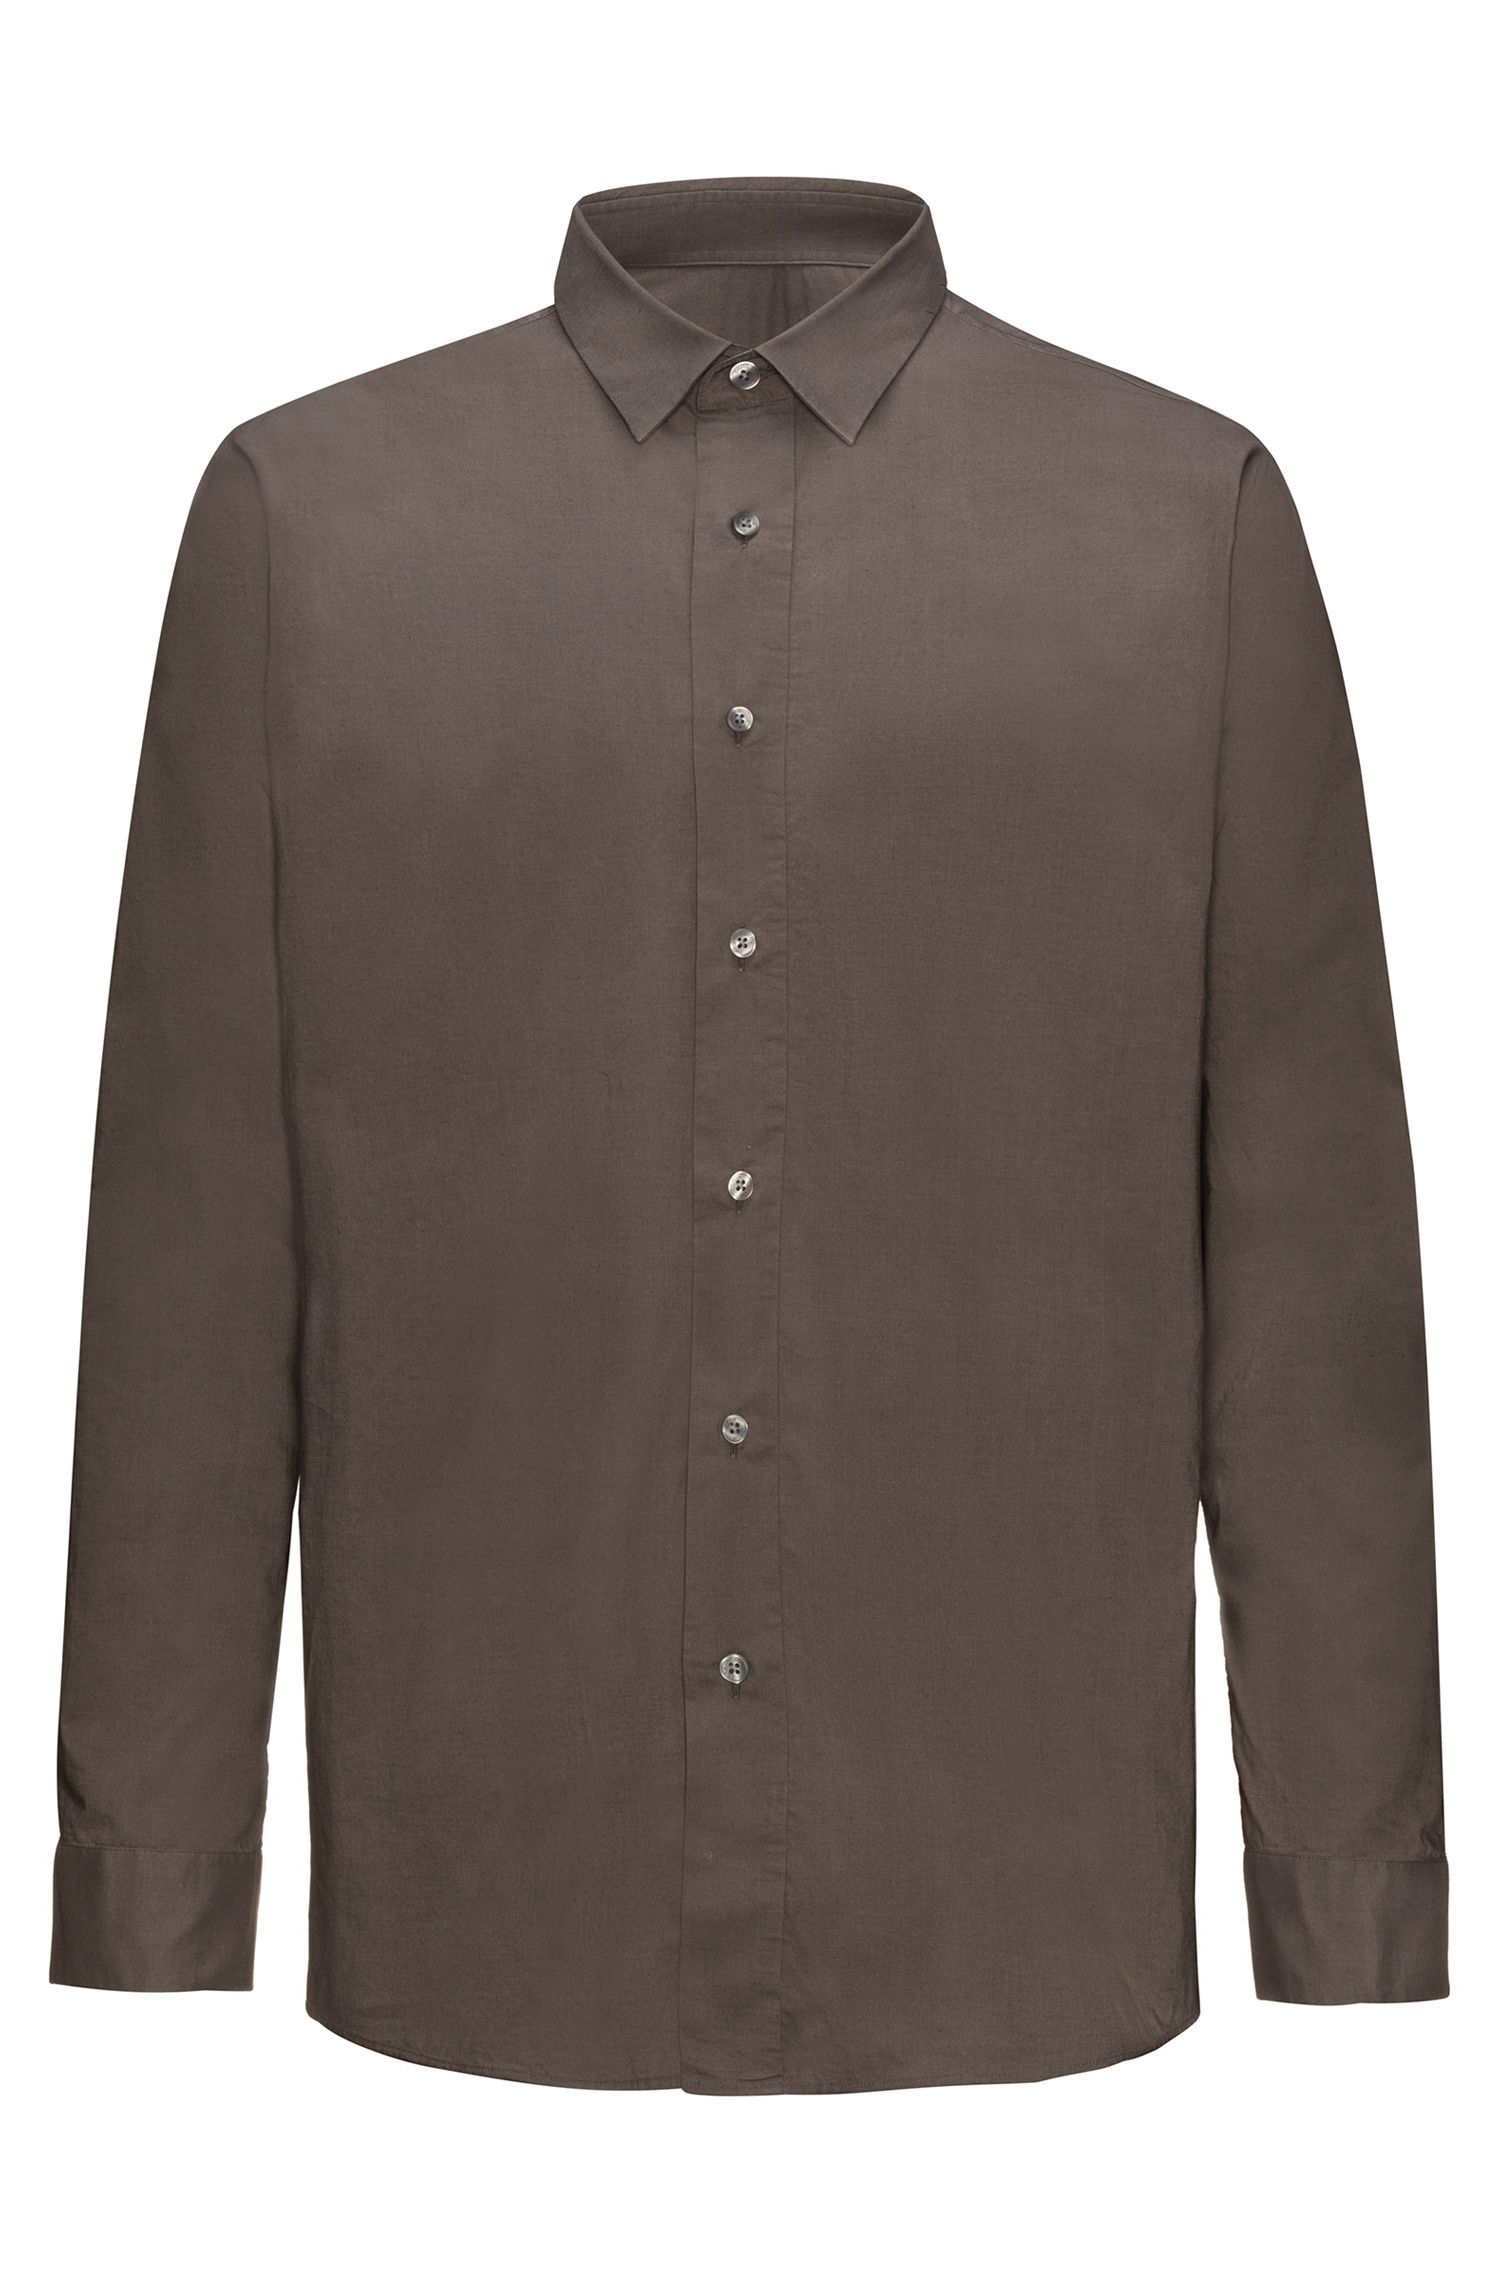 Cotton Sport Shirt, Relaxed Fit | Emilton